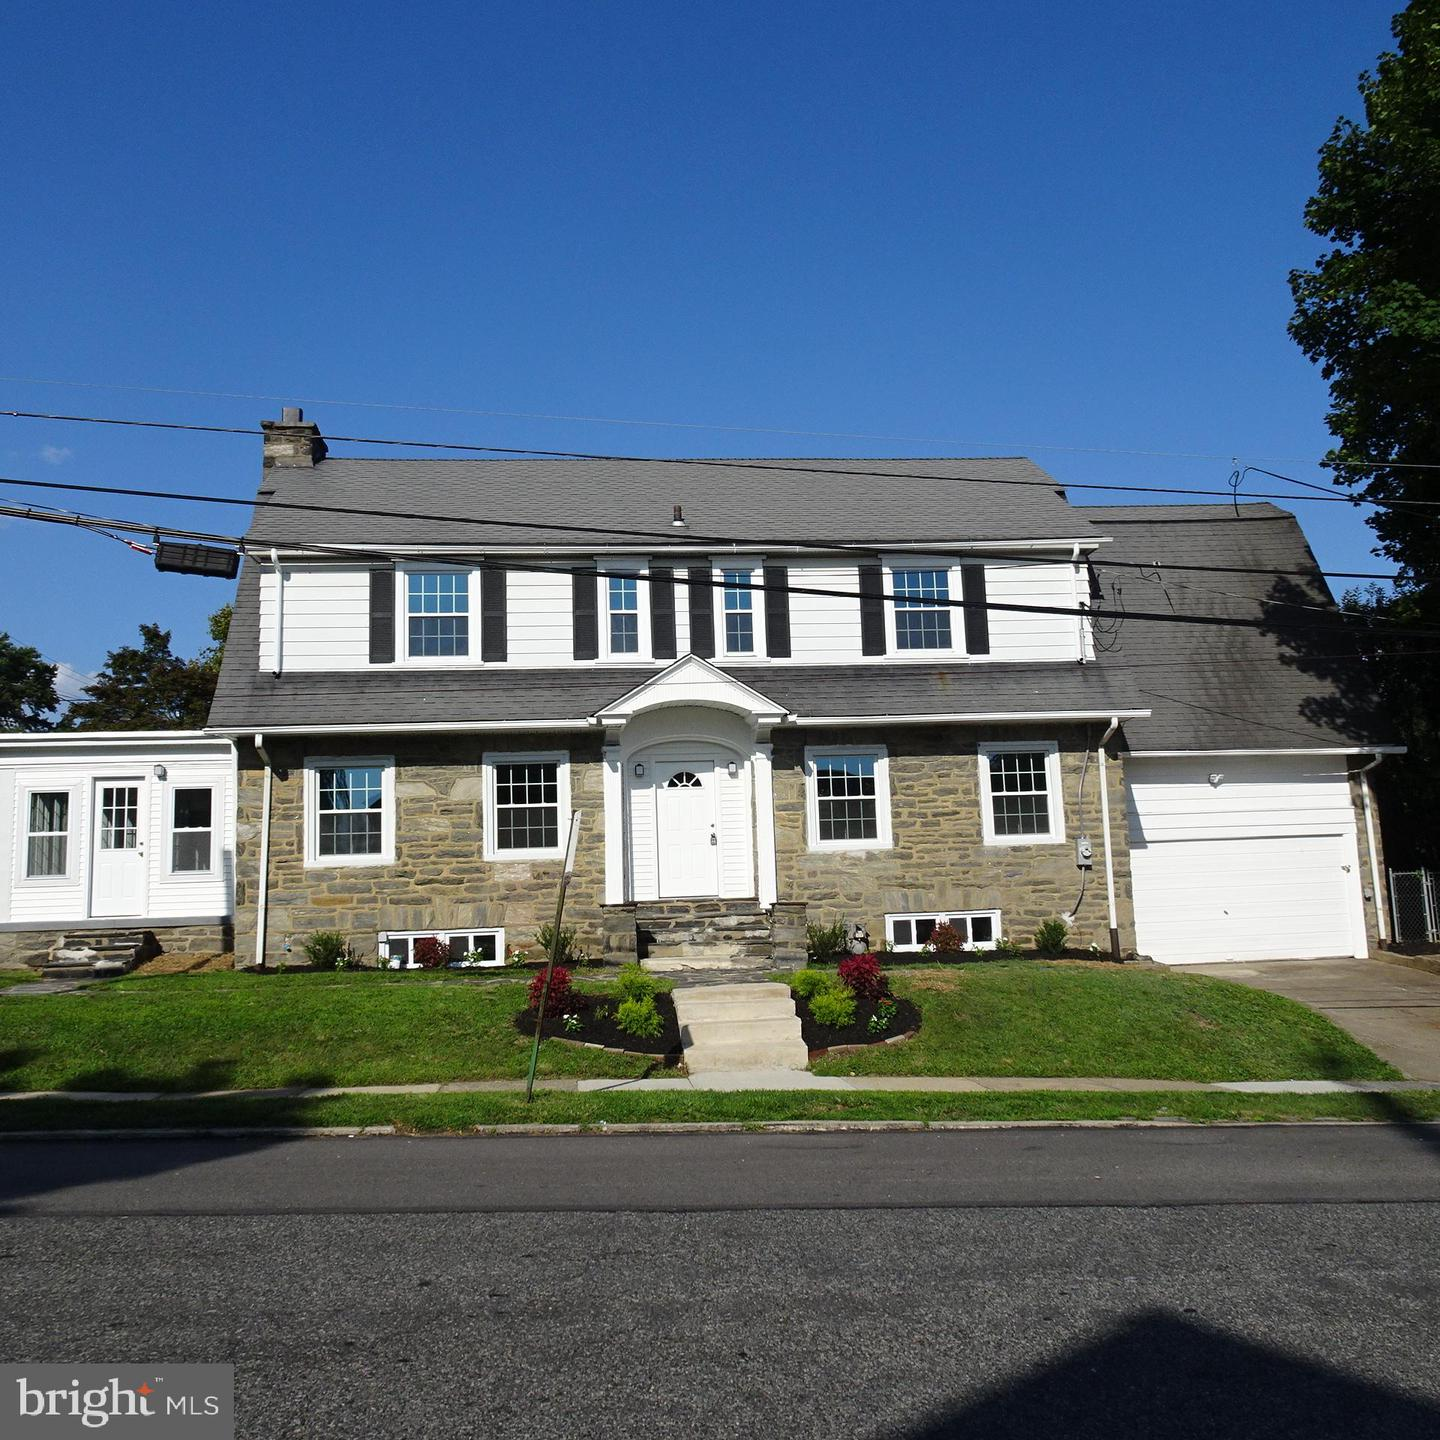 4314 State Road Drexel Hill, PA 19026